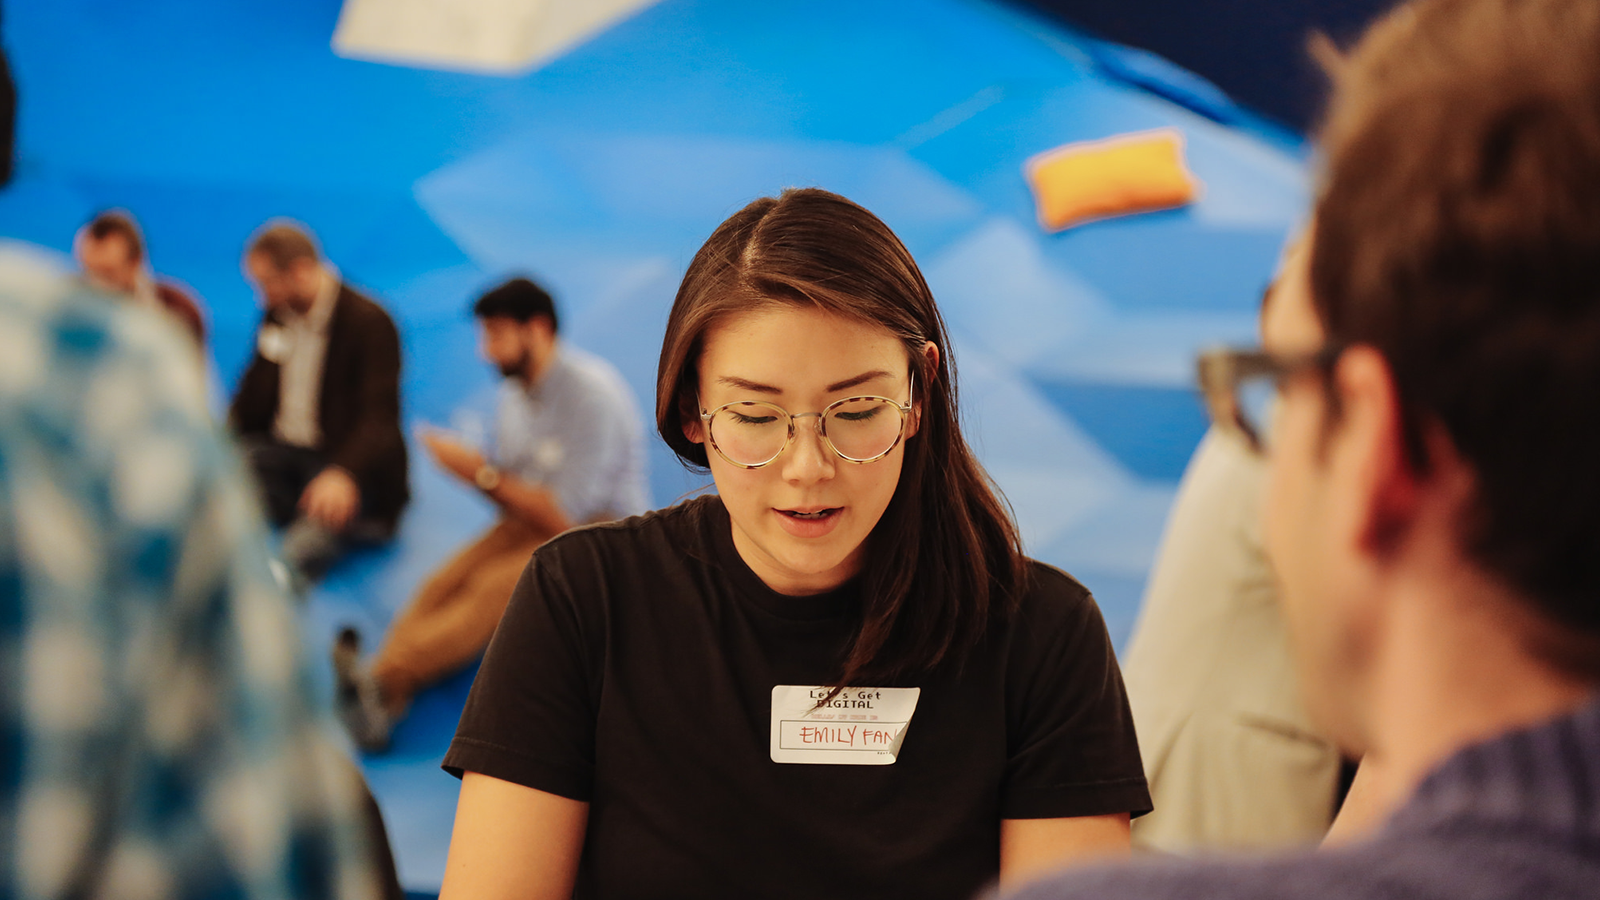 Woman with glasses, brown shirt, and name tag at gathering looking down.